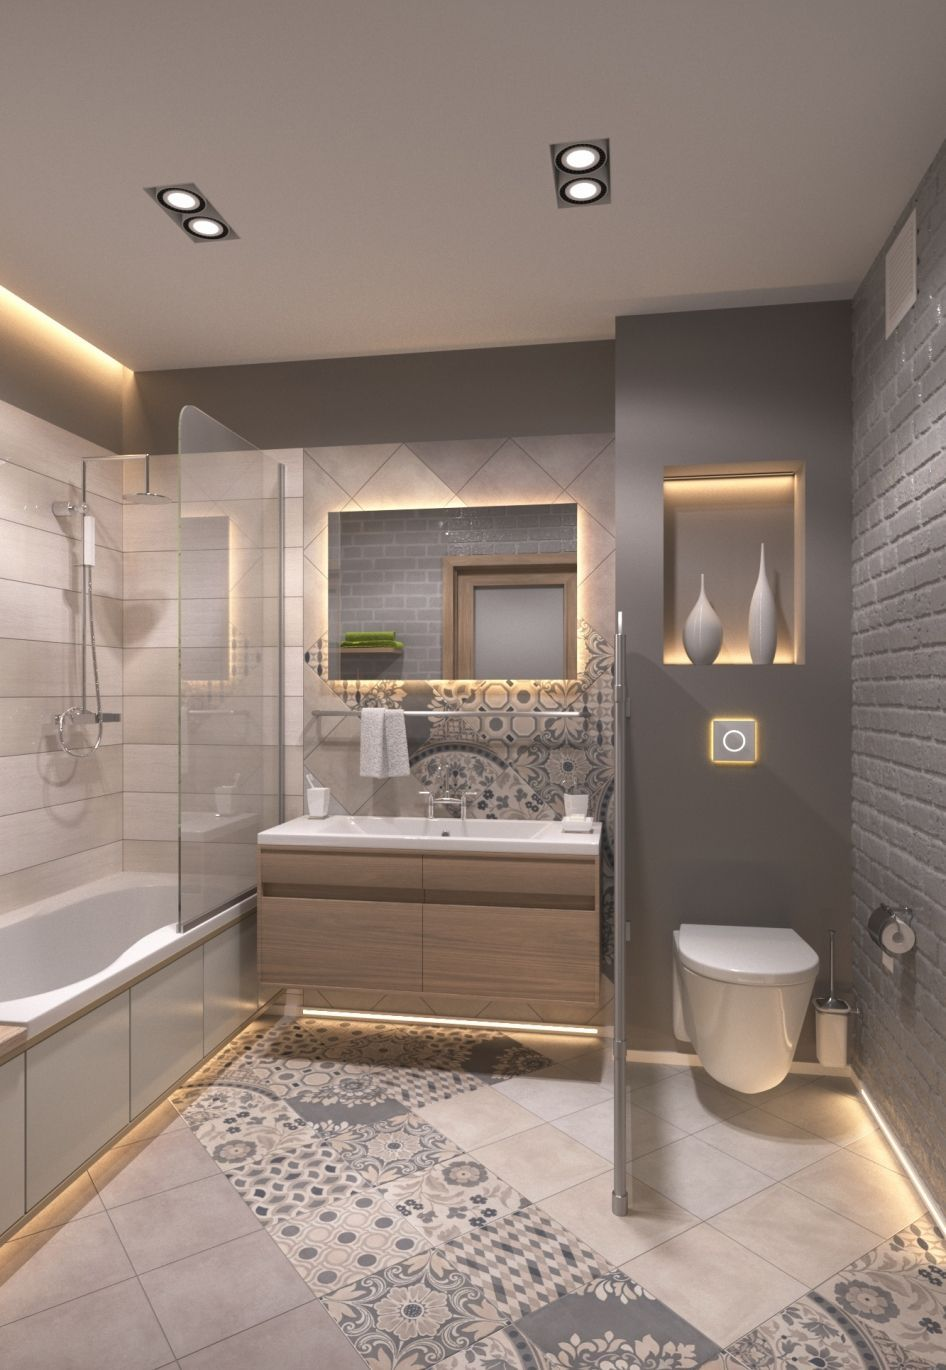 20 Farmhouse Style Master Bathroom Remodel Decor Ideas 2018 Renovation Cost